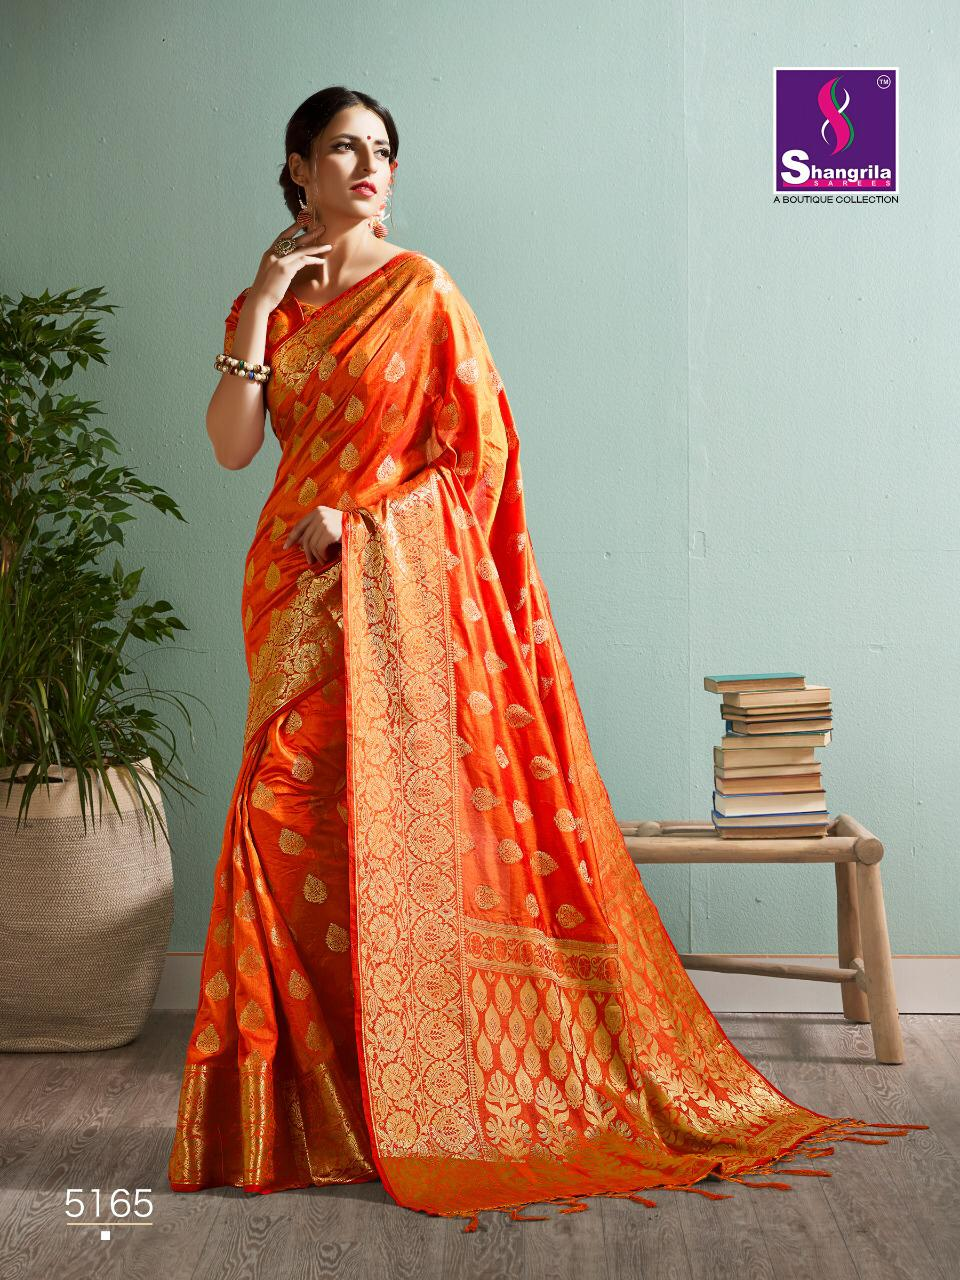 Shangrila Vasansi Silk 2 collection 11